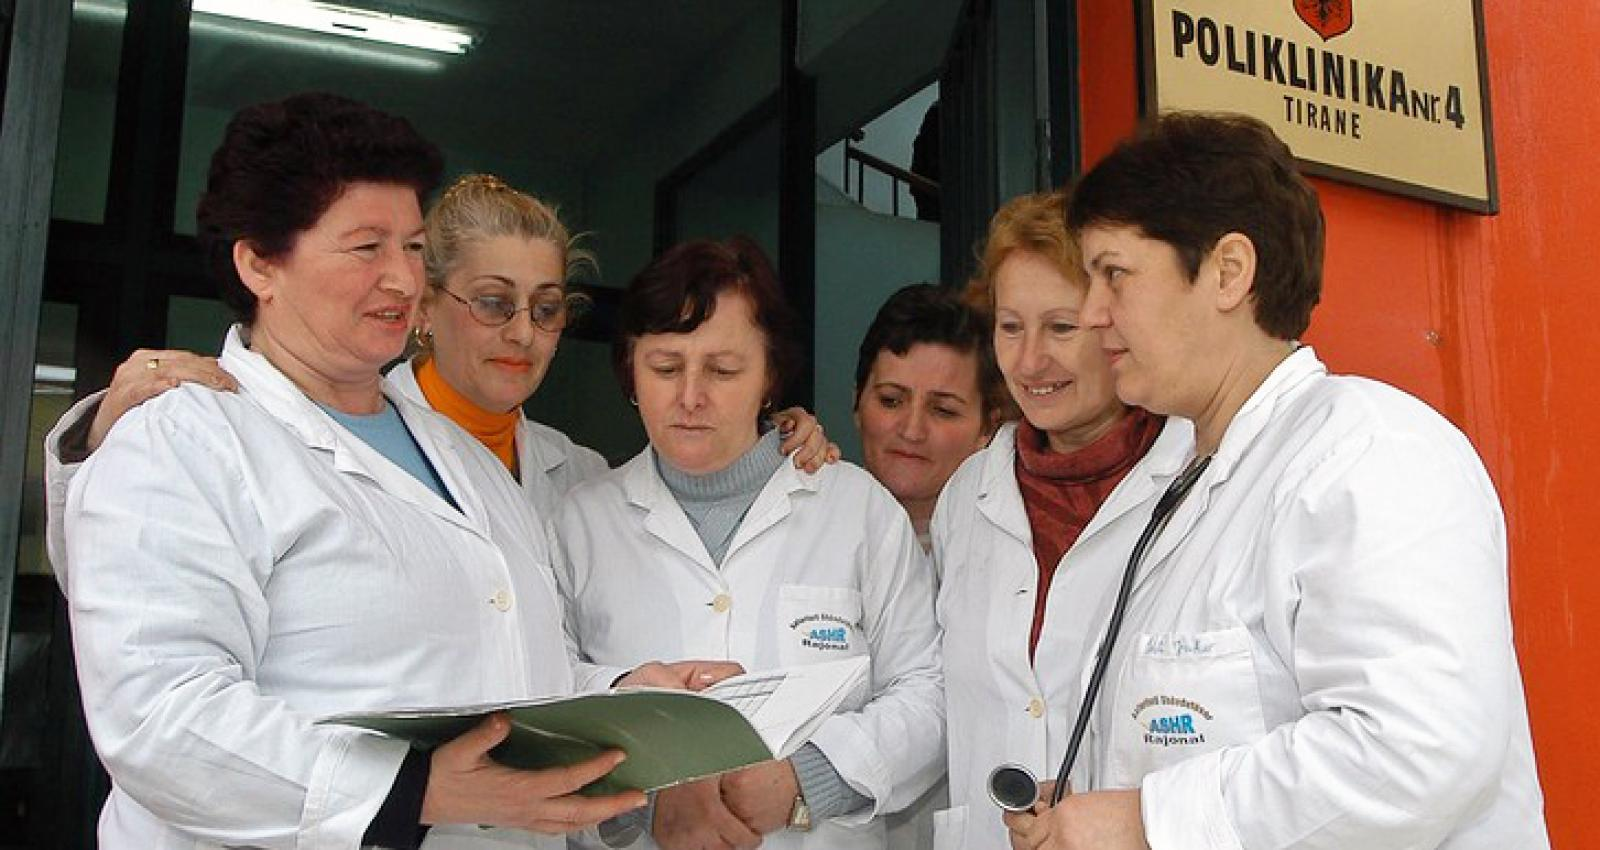 Doctors congregating outside a hospital in Tirana in 2004. Despite gains made in closing gender gaps in the past decade, the COVID-19 pandemic is exacerbating inequalities. Photo: Albes Fusha/The World Bank.